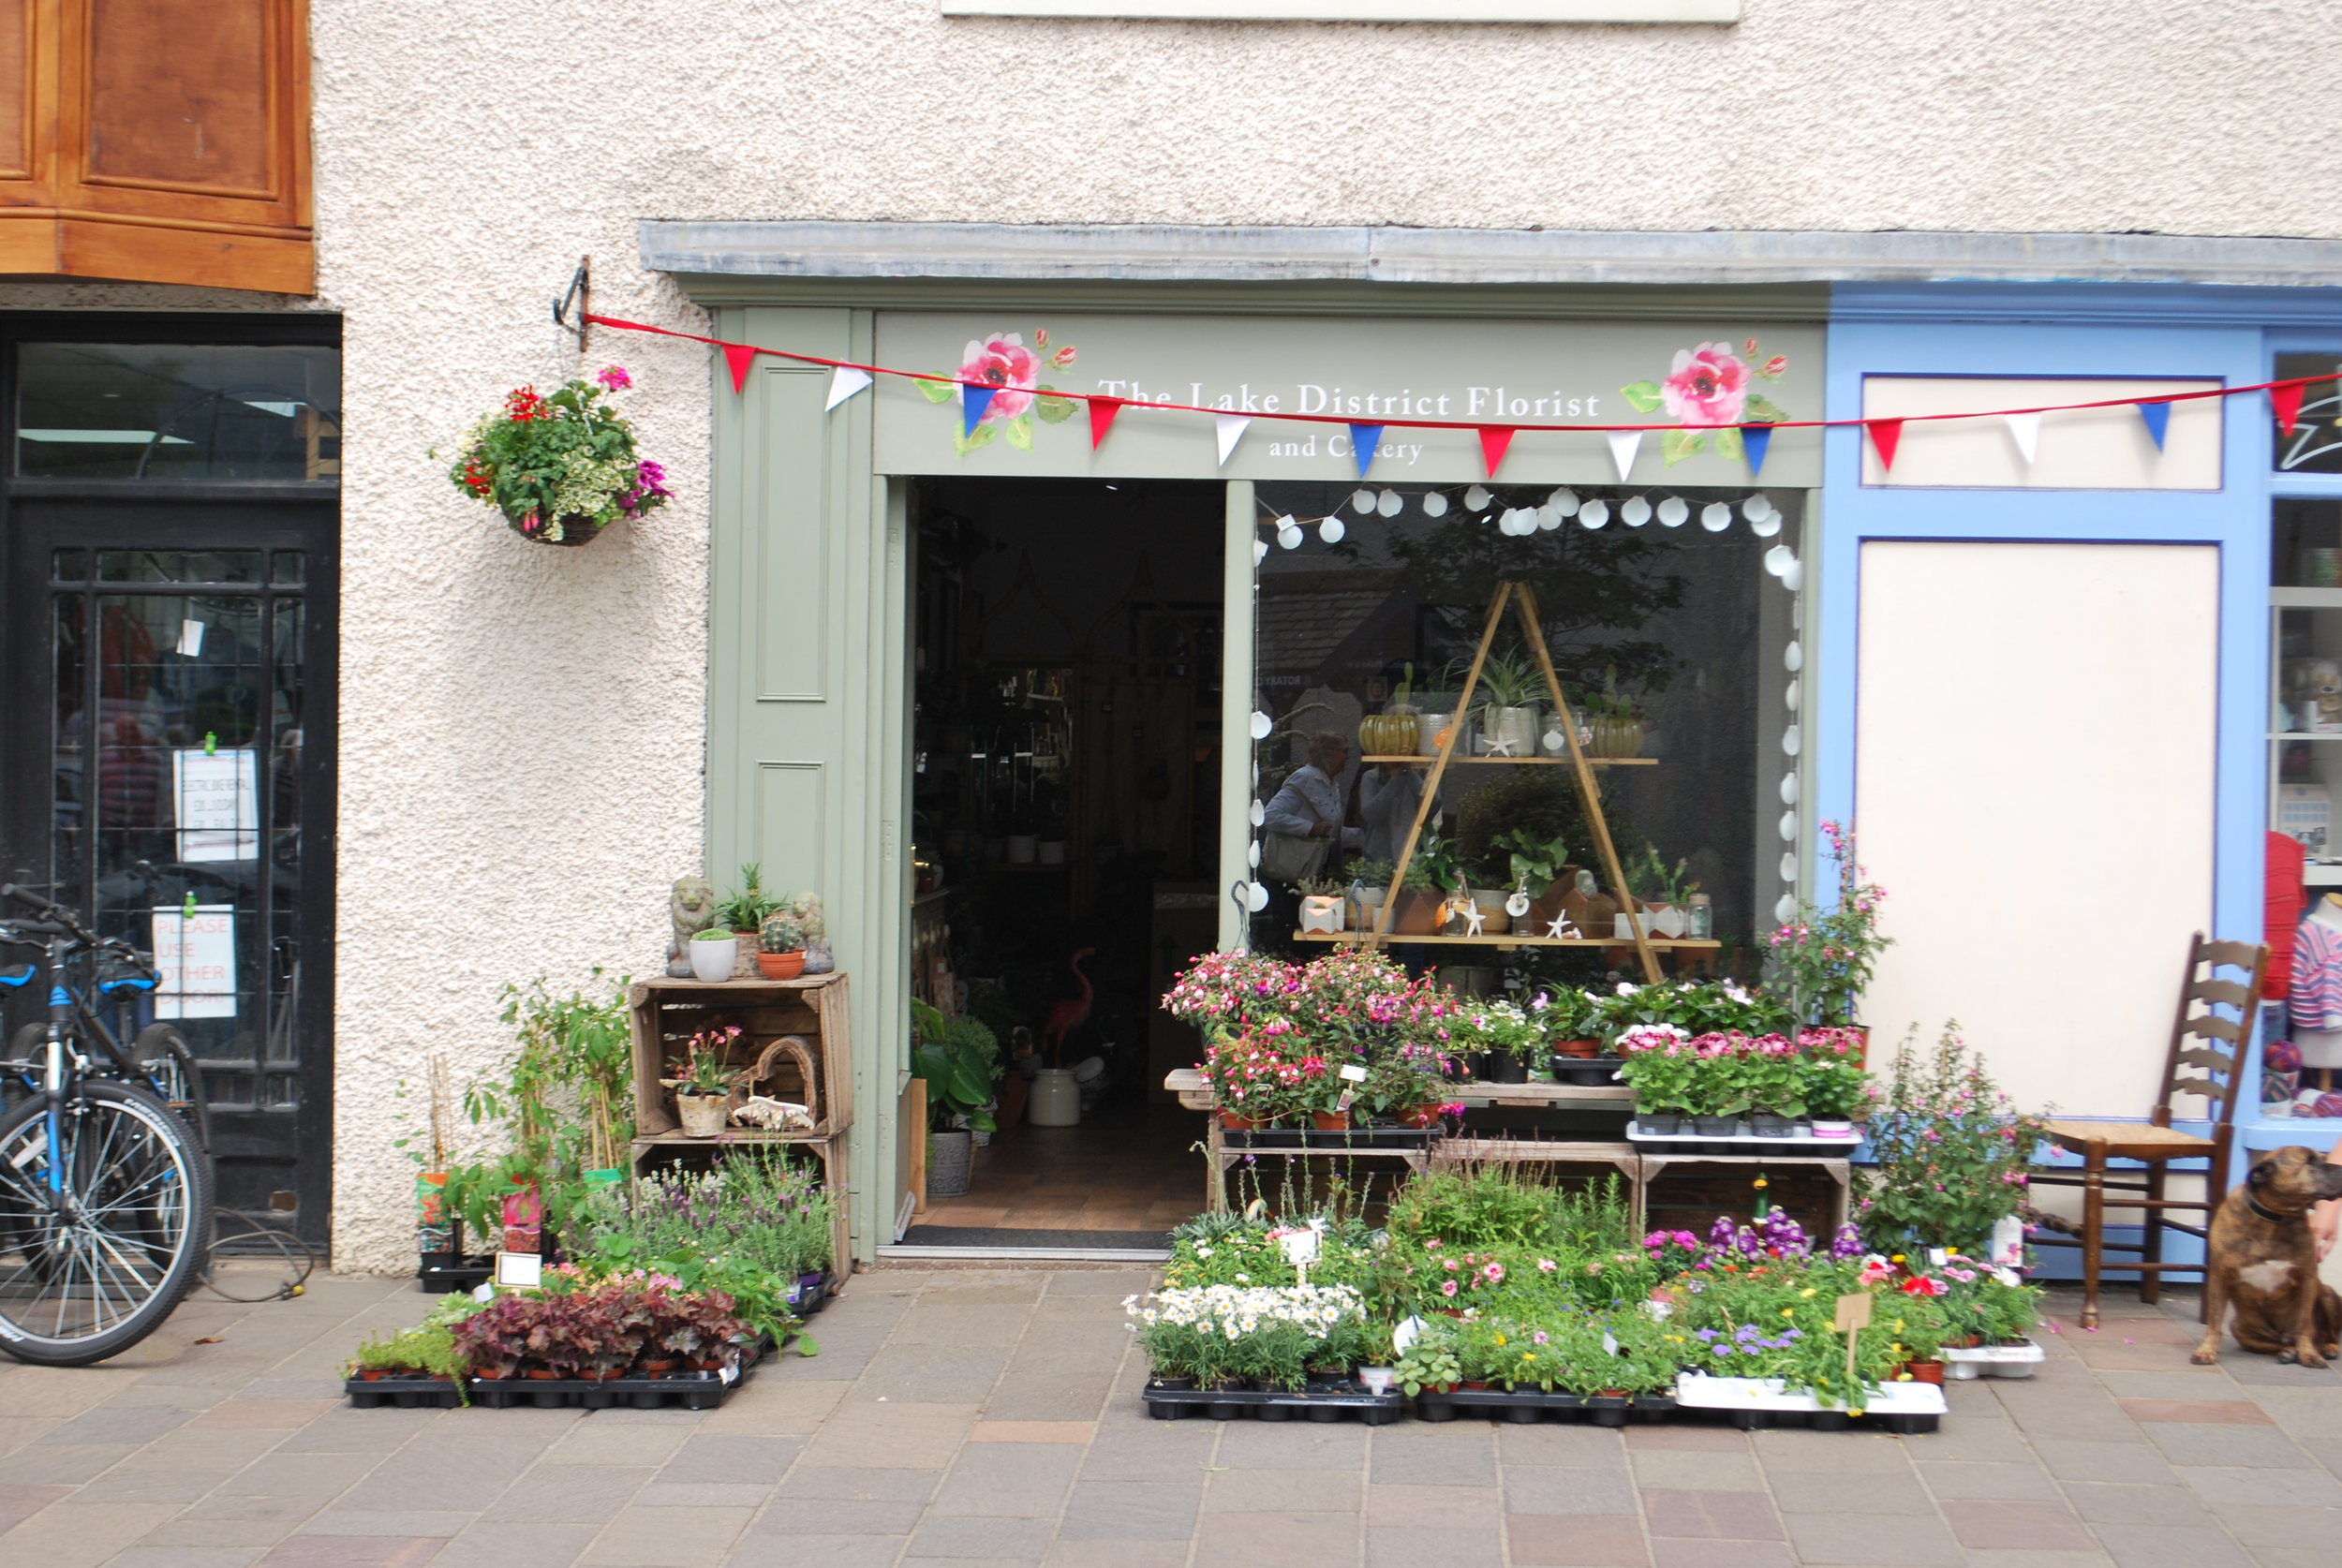 The Lake District Florist and Cakery    We provide bespoke wedding and event flowers, tasteful funeral flowers and beautifully hand-tied gift bouquets in the Lake District. Maker of delicious wedding and celebration cakes decorated to your requirements. Special dietary requirements catered for.  80 Main Street, Keswick, CA12 5DX  017687 73003